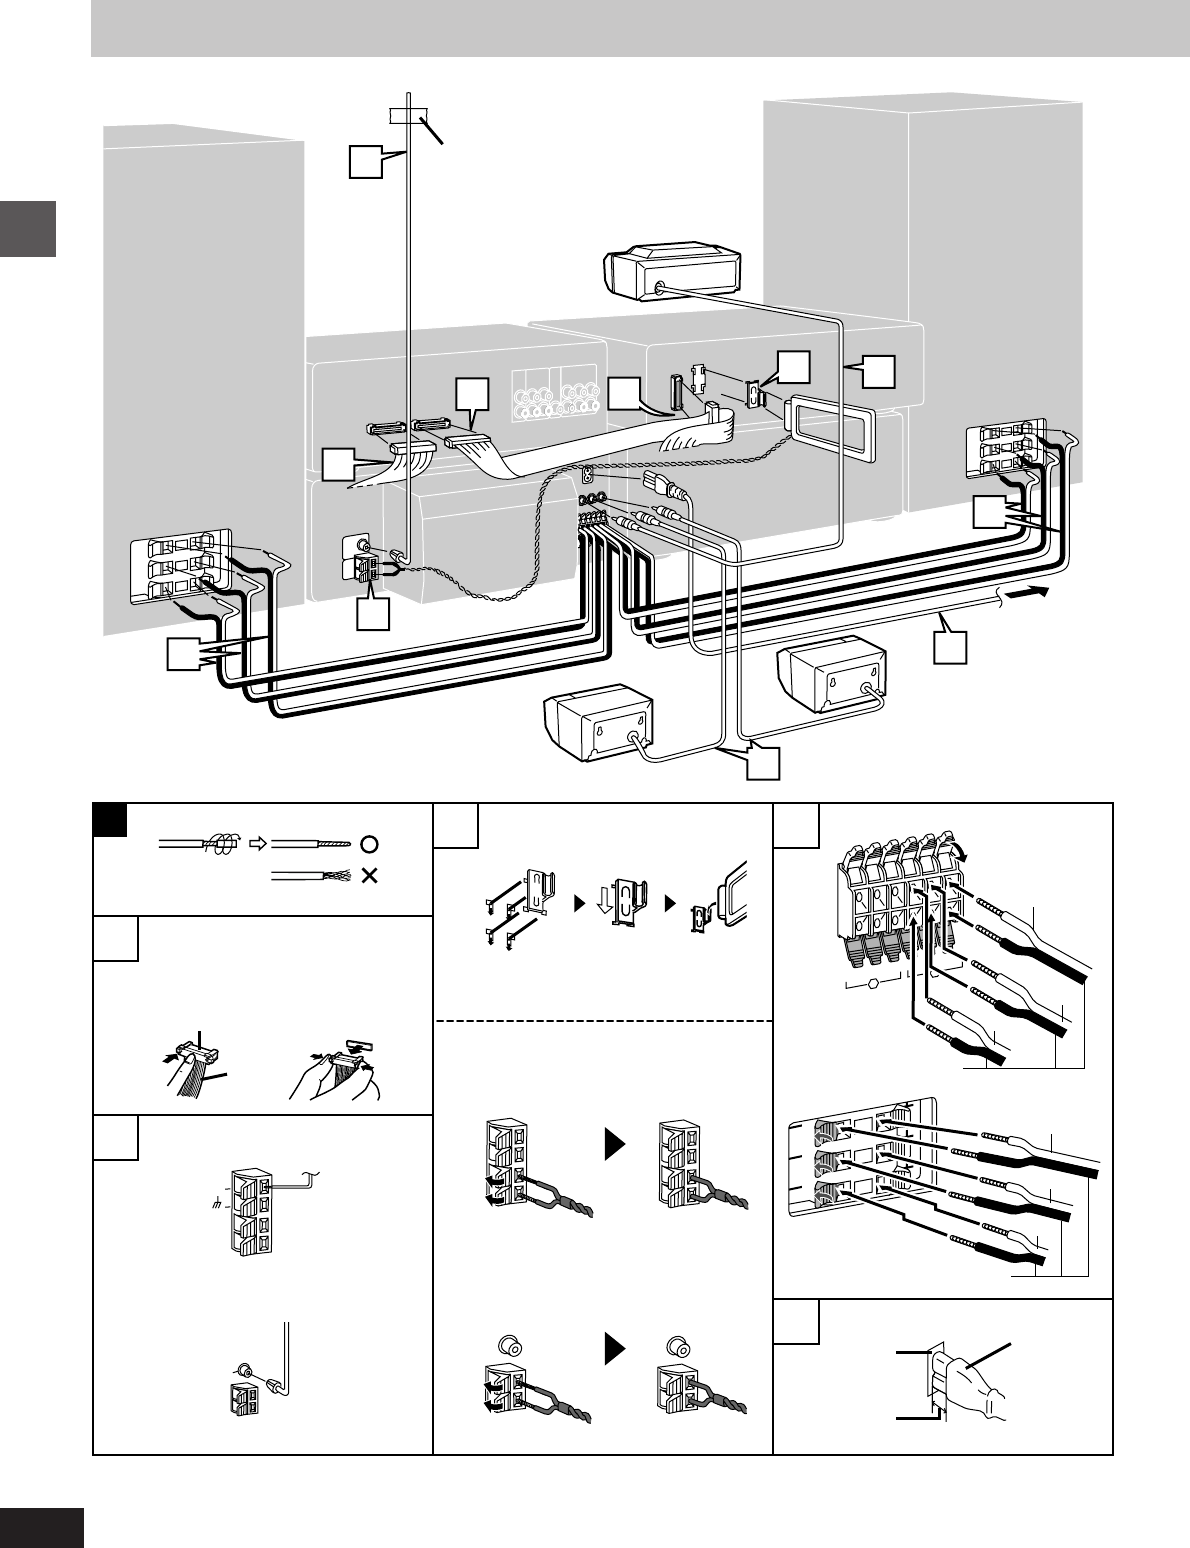 hight resolution of page 6 of technics home theater system sc eh760 user guide home stereo speaker wiring diagrams technics stereo speakers wiring diagram